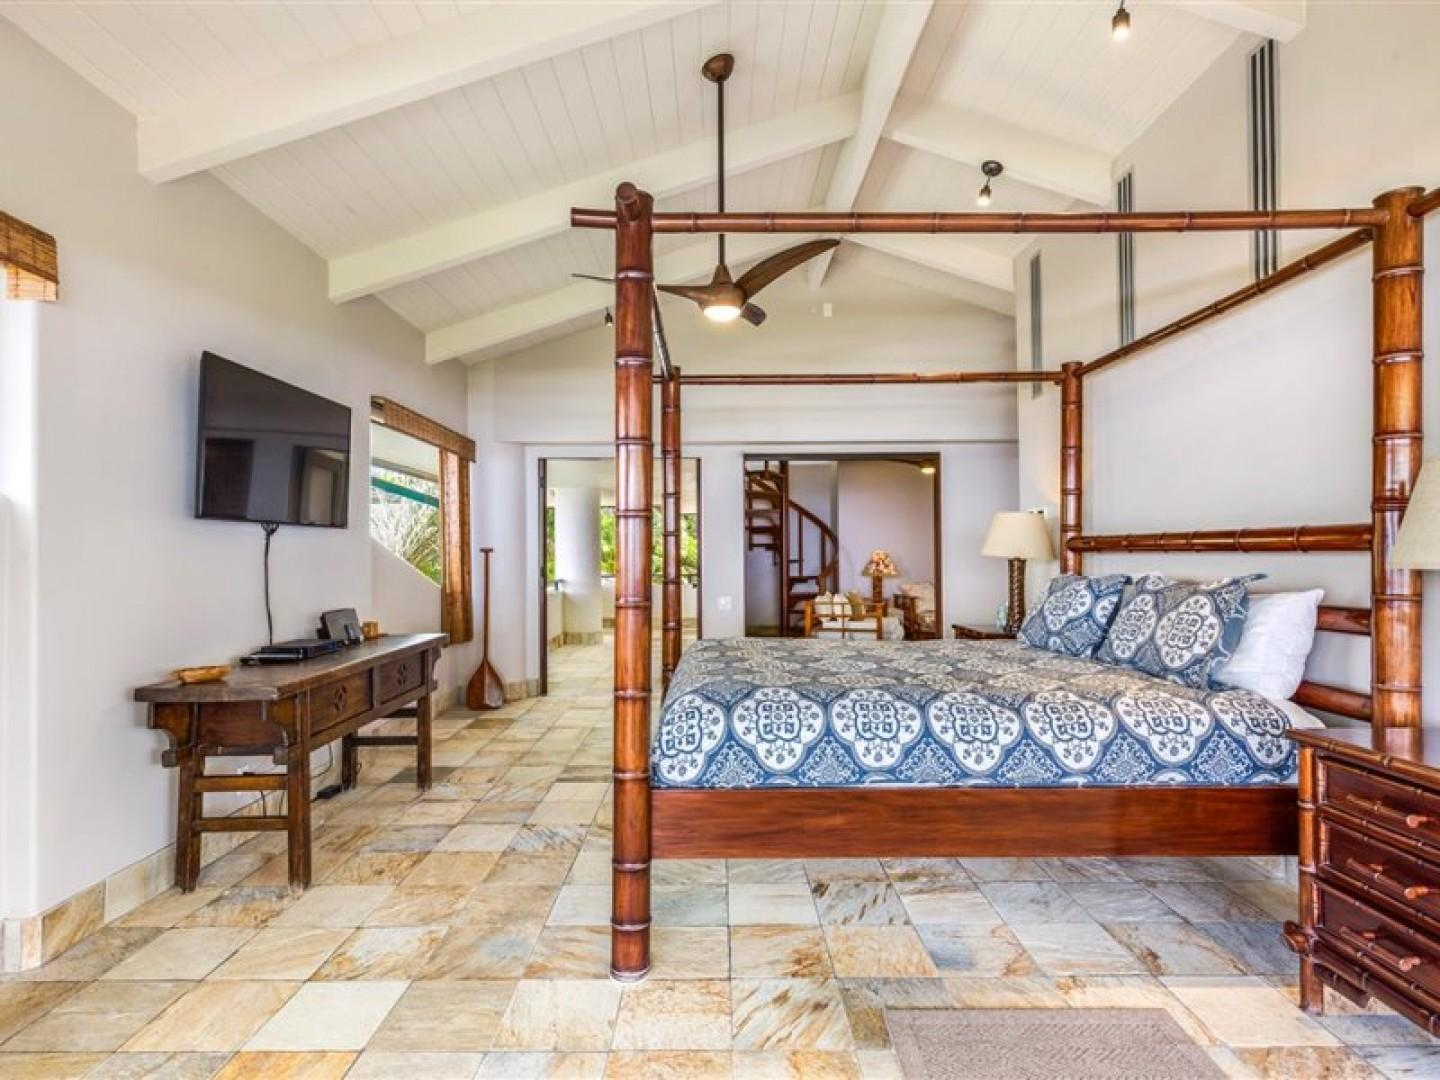 Vaulted ceilings, ceiling fans and wonderful natural light throughout